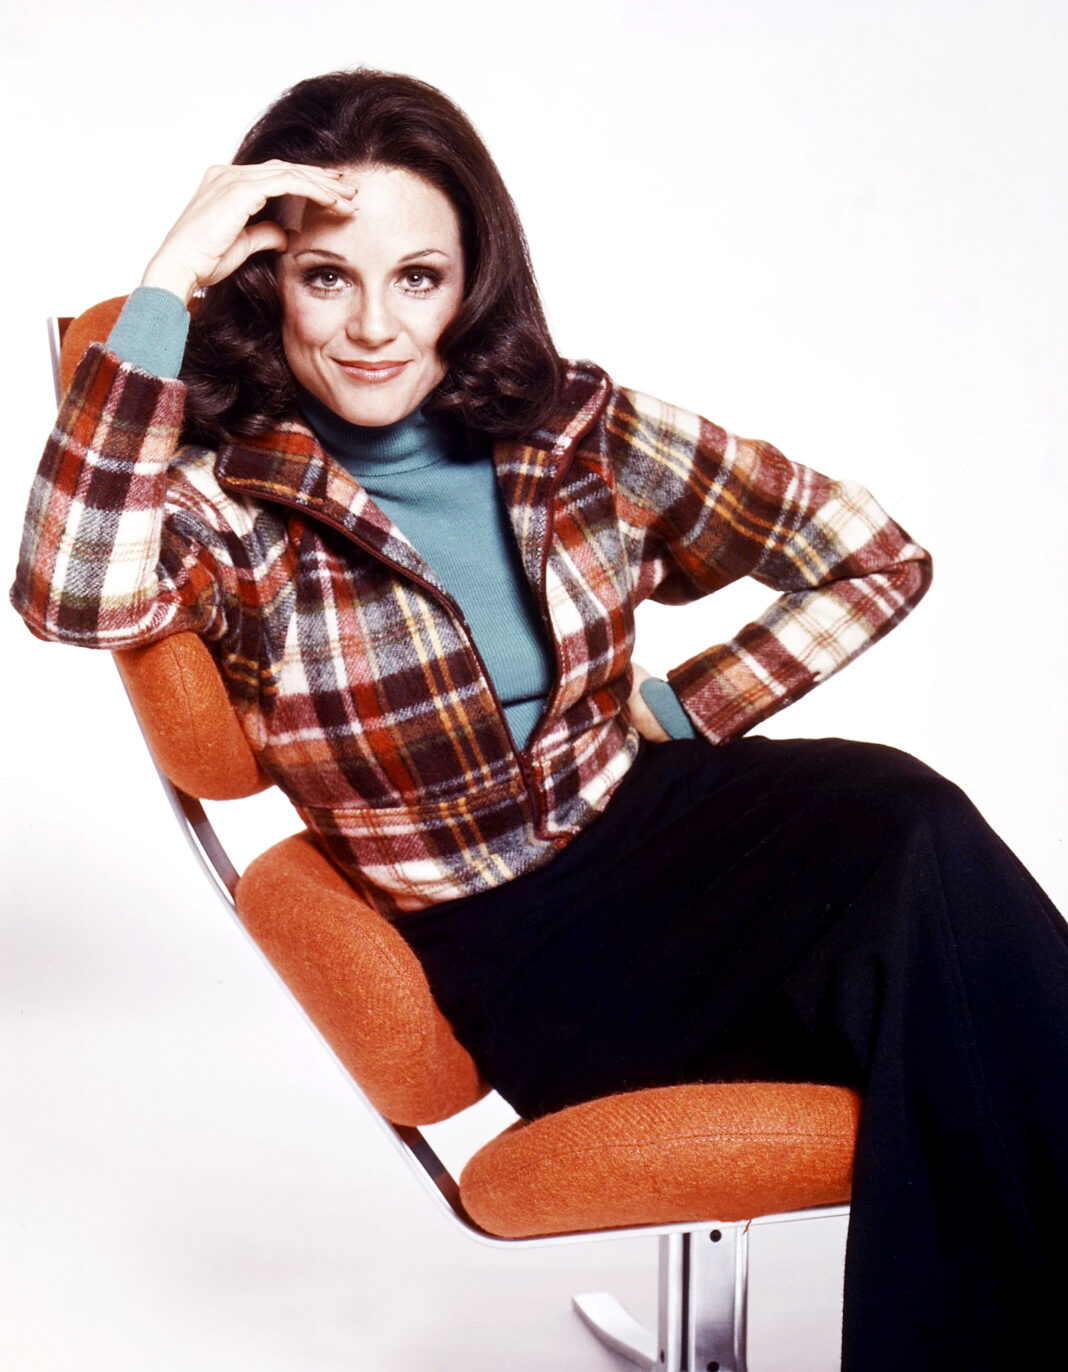 'Mary Tyler Moore Show' Actress Valerie Harper Dies at 80